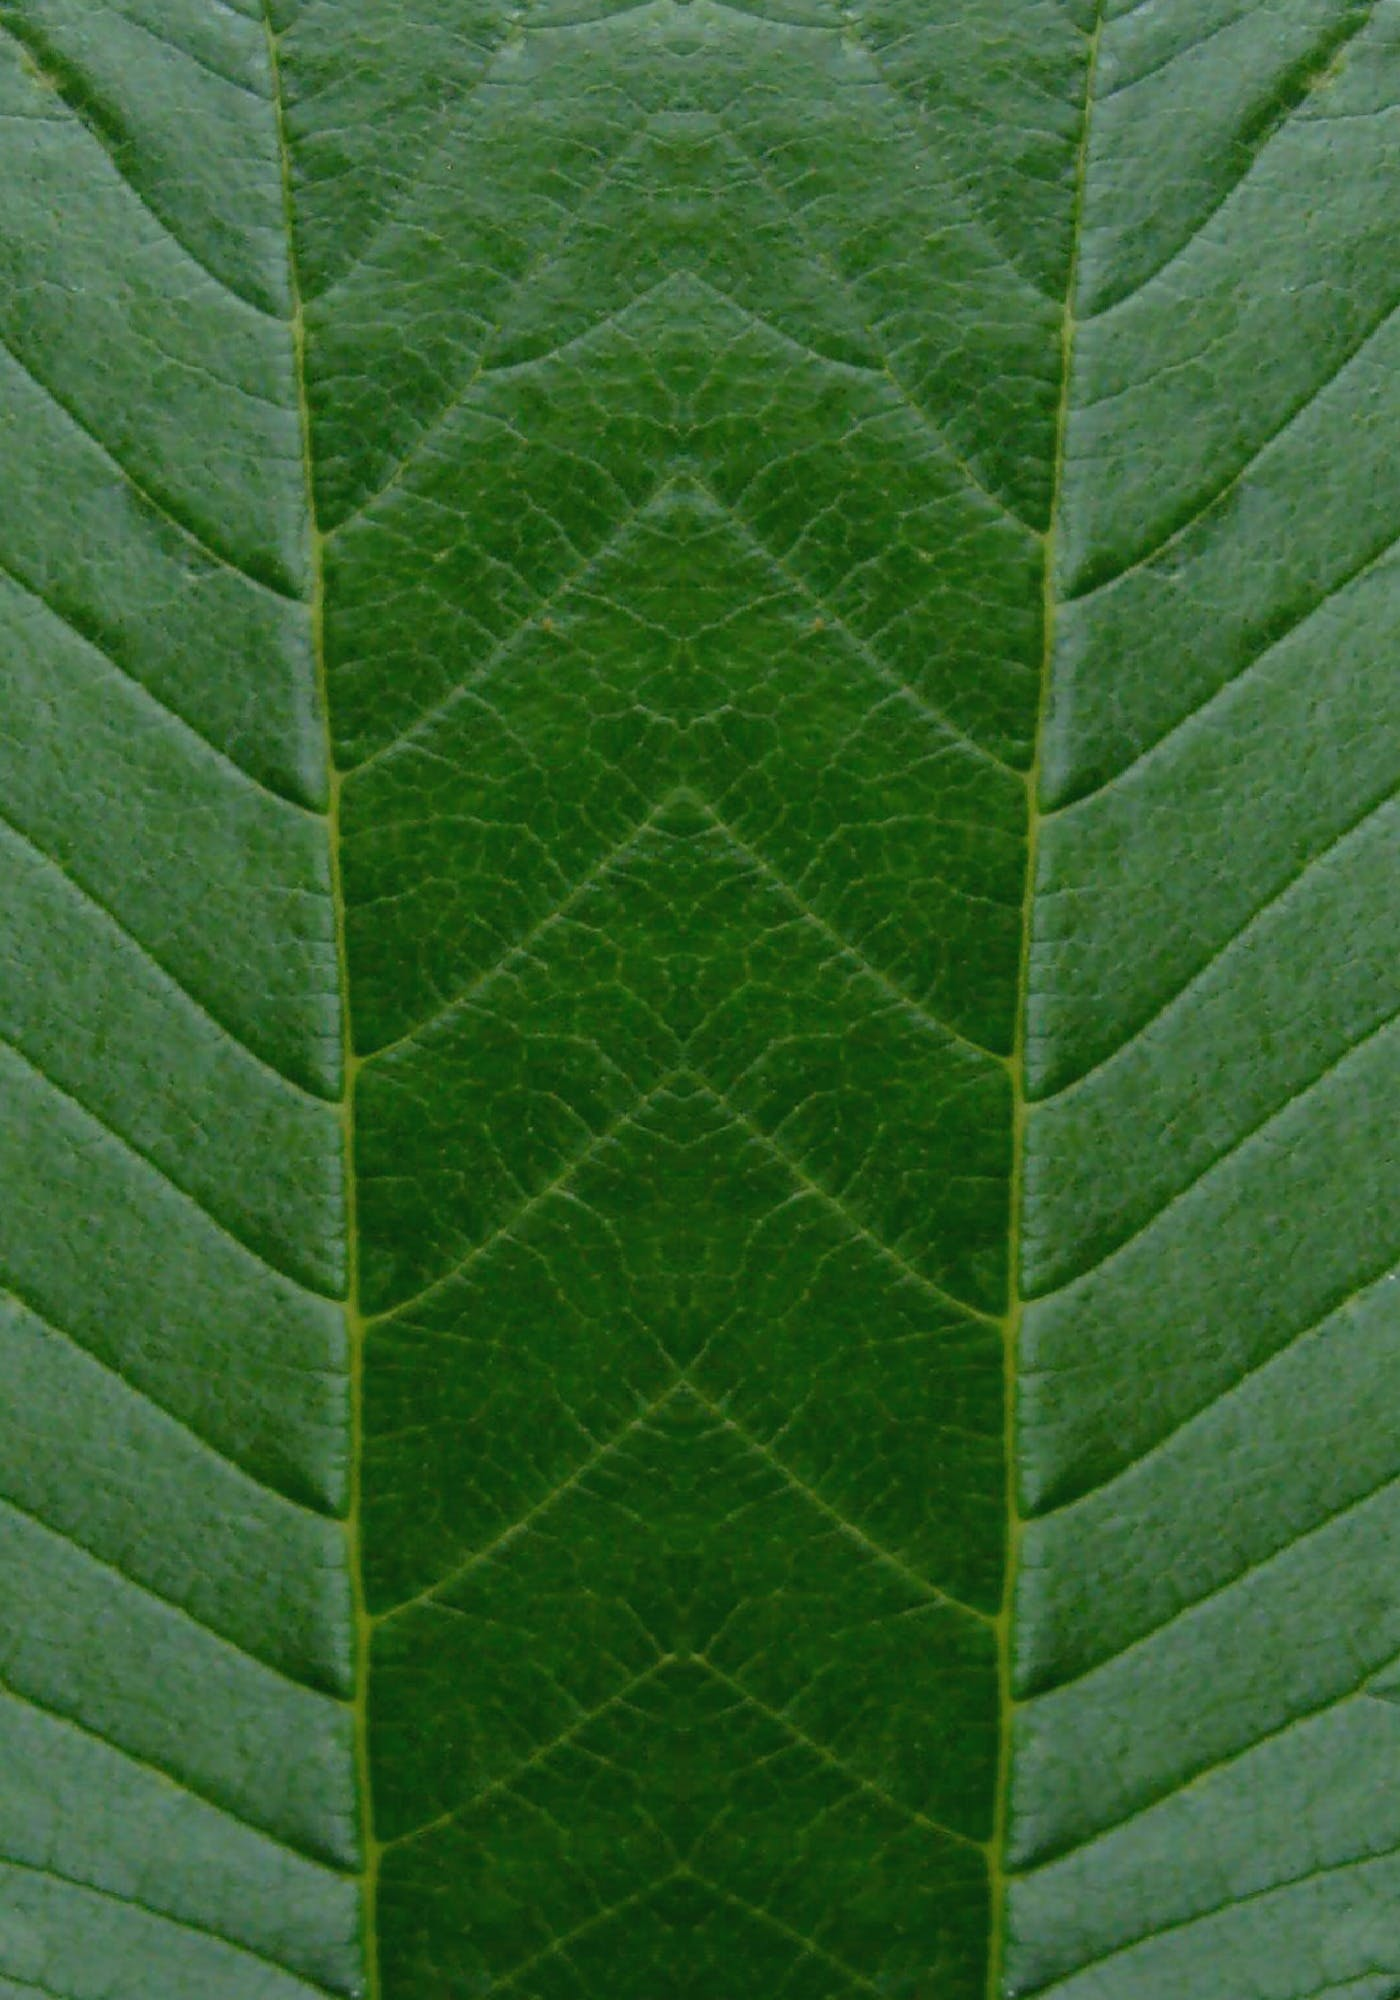 Free stock photo of background, green, leaf, nature